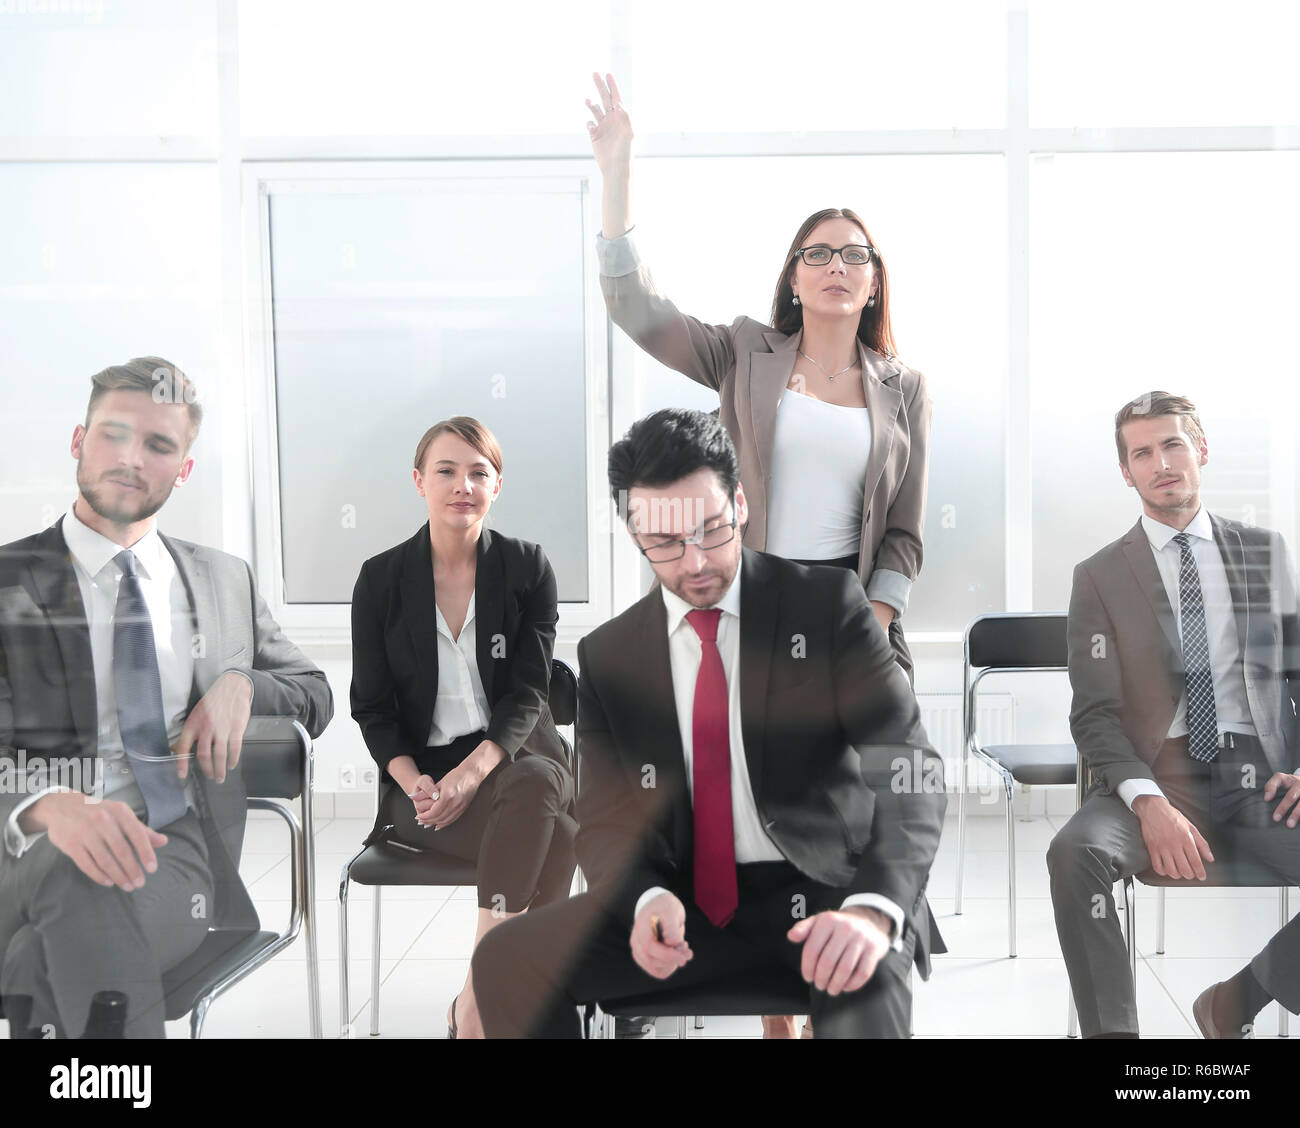 The team is listening and asking the questions. - Stock Image